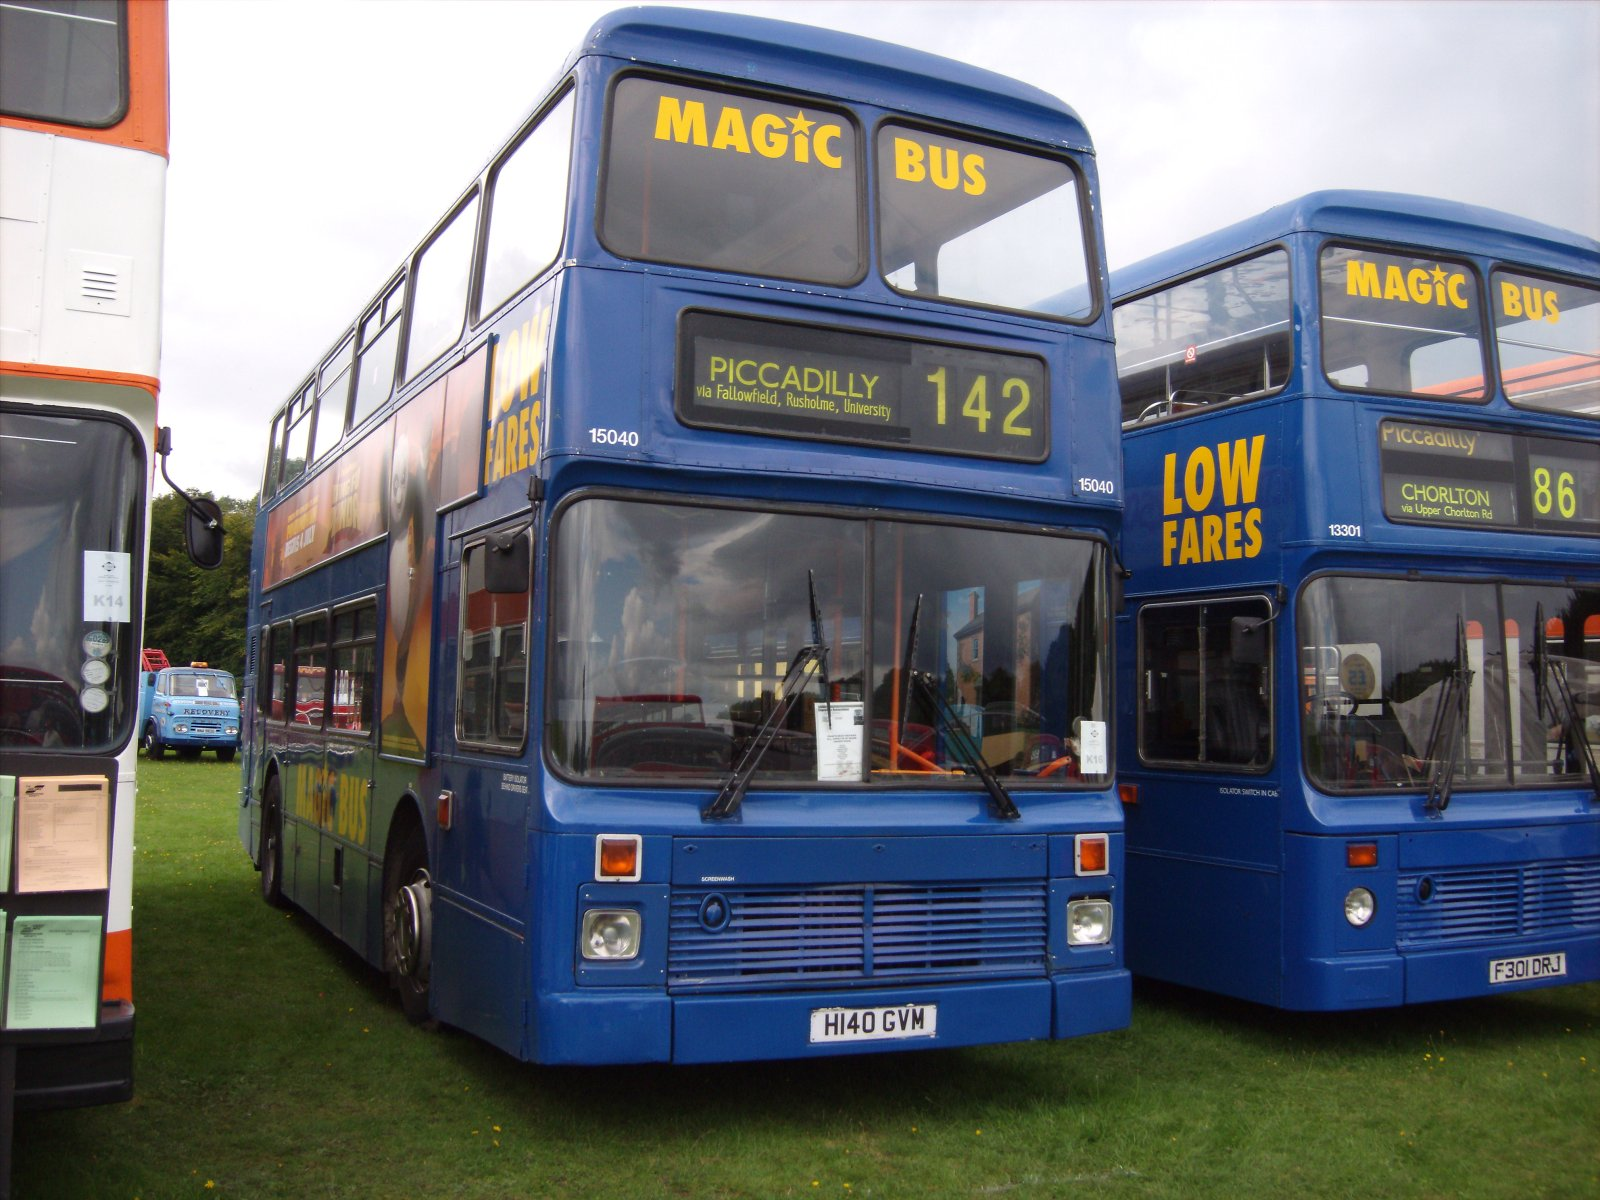 File:Stagecoach bus 15040 (H140 GVM), 2008 Trans Lancs bus rally.